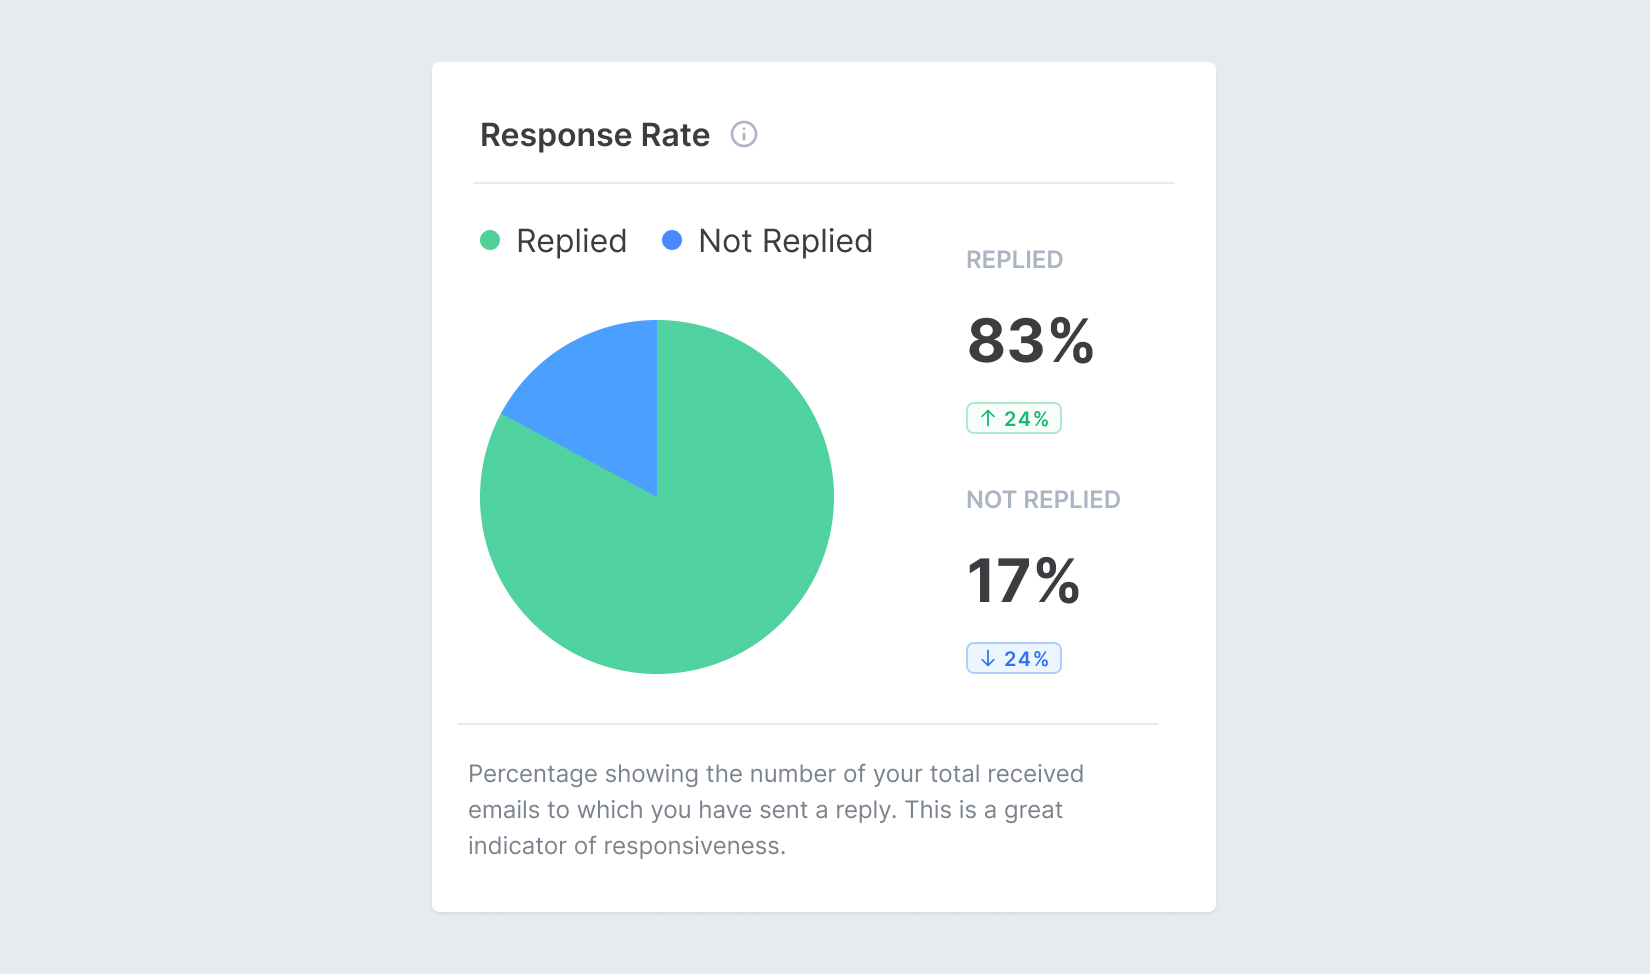 Screenshot of Email Meter, showing analytics and metrics about Response Rate